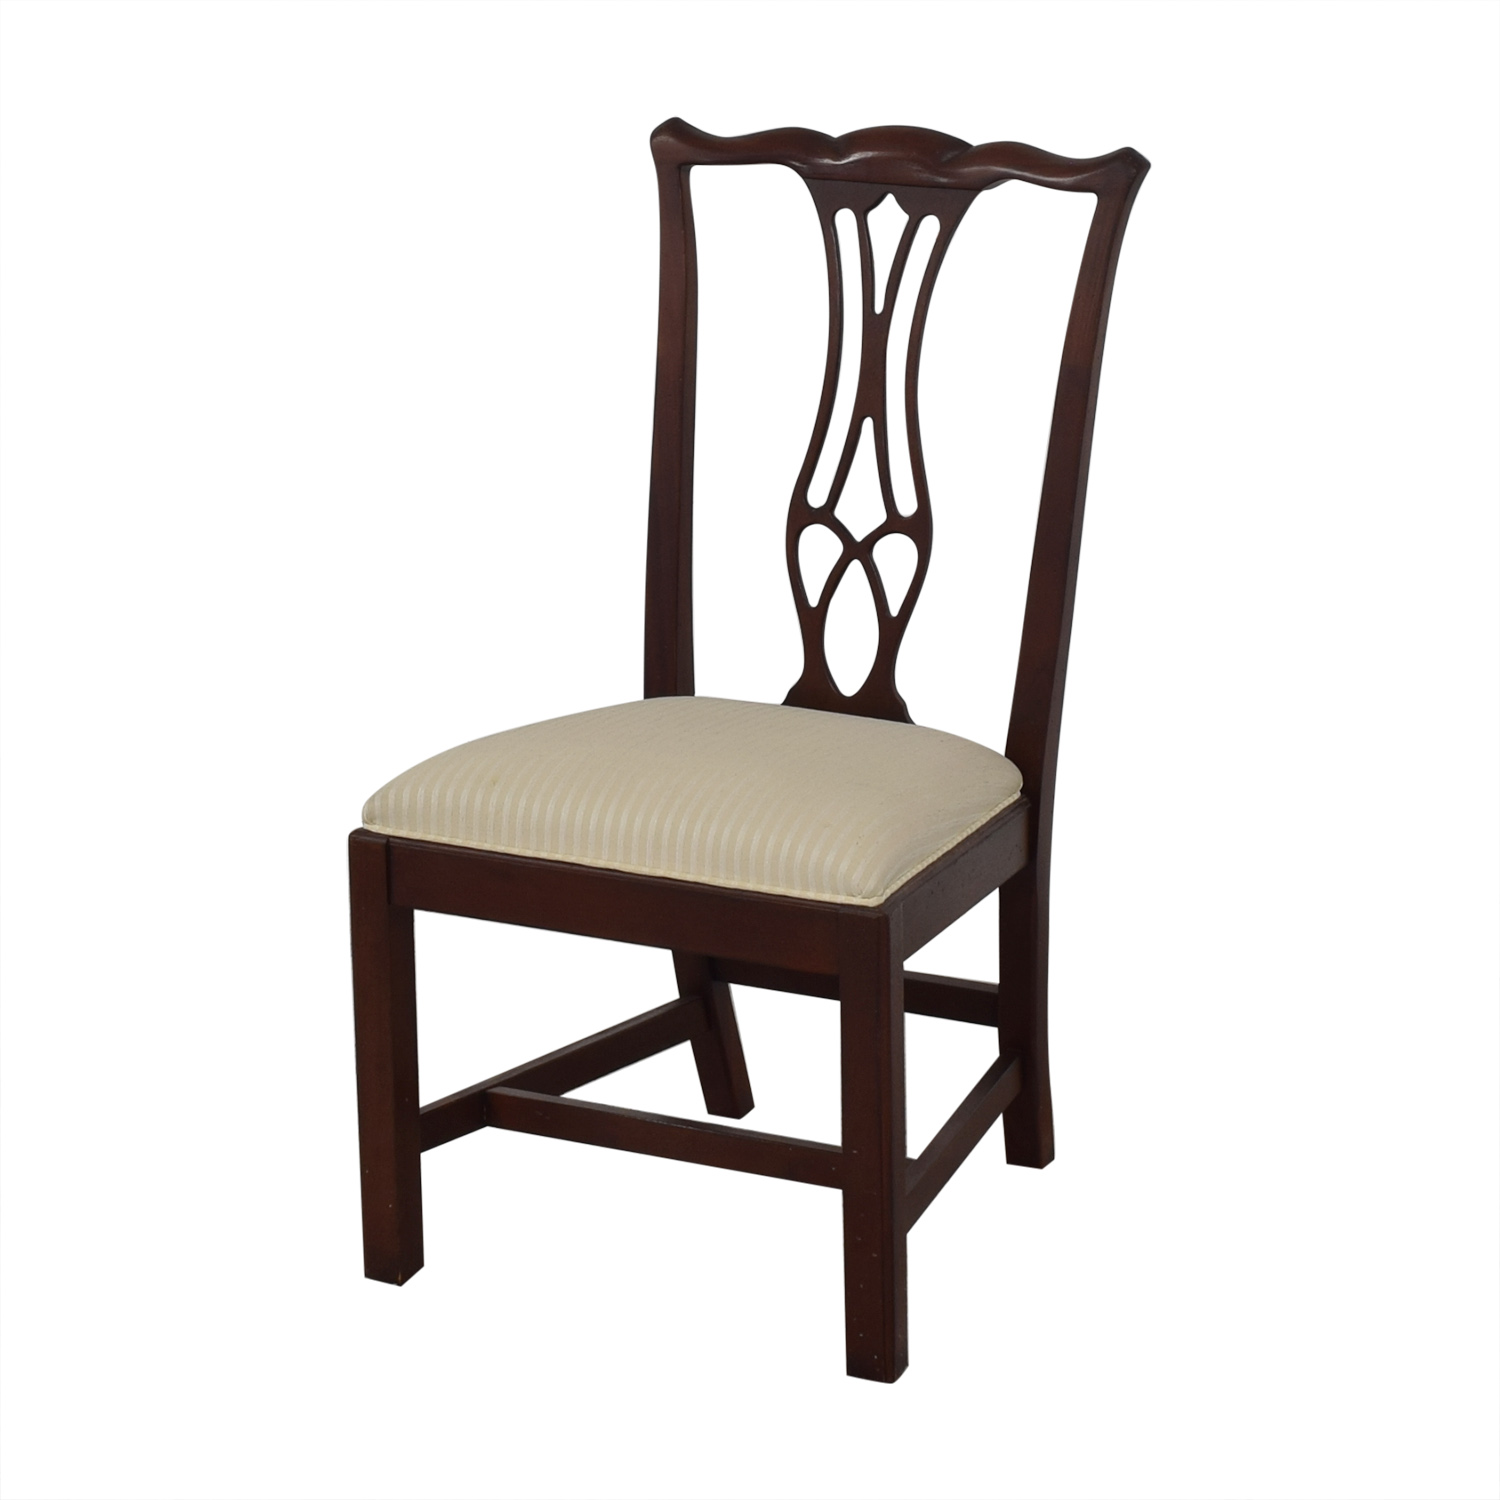 Drexel Heritage Drexel Heritage Upholstered Dining Chairs discount